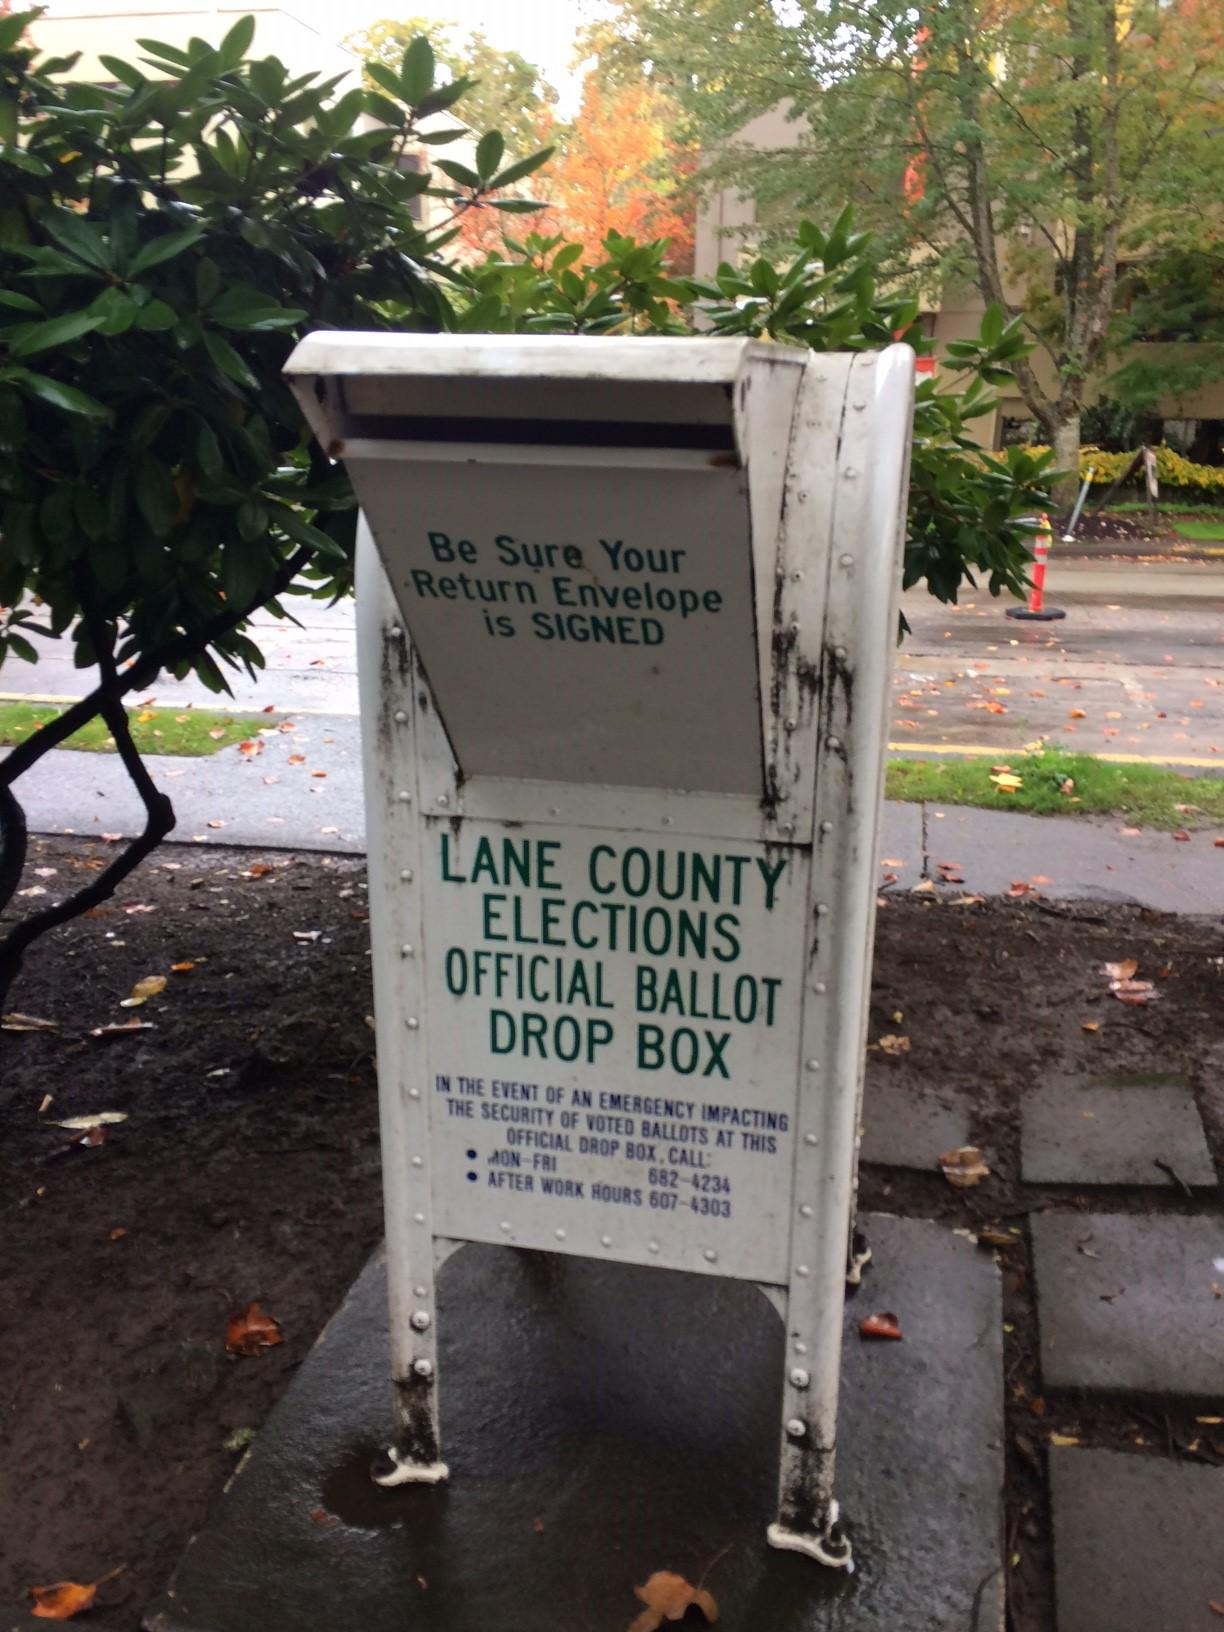 Ballots are due to an official drop box by 8 p.m. on Electin Day. (SBG)